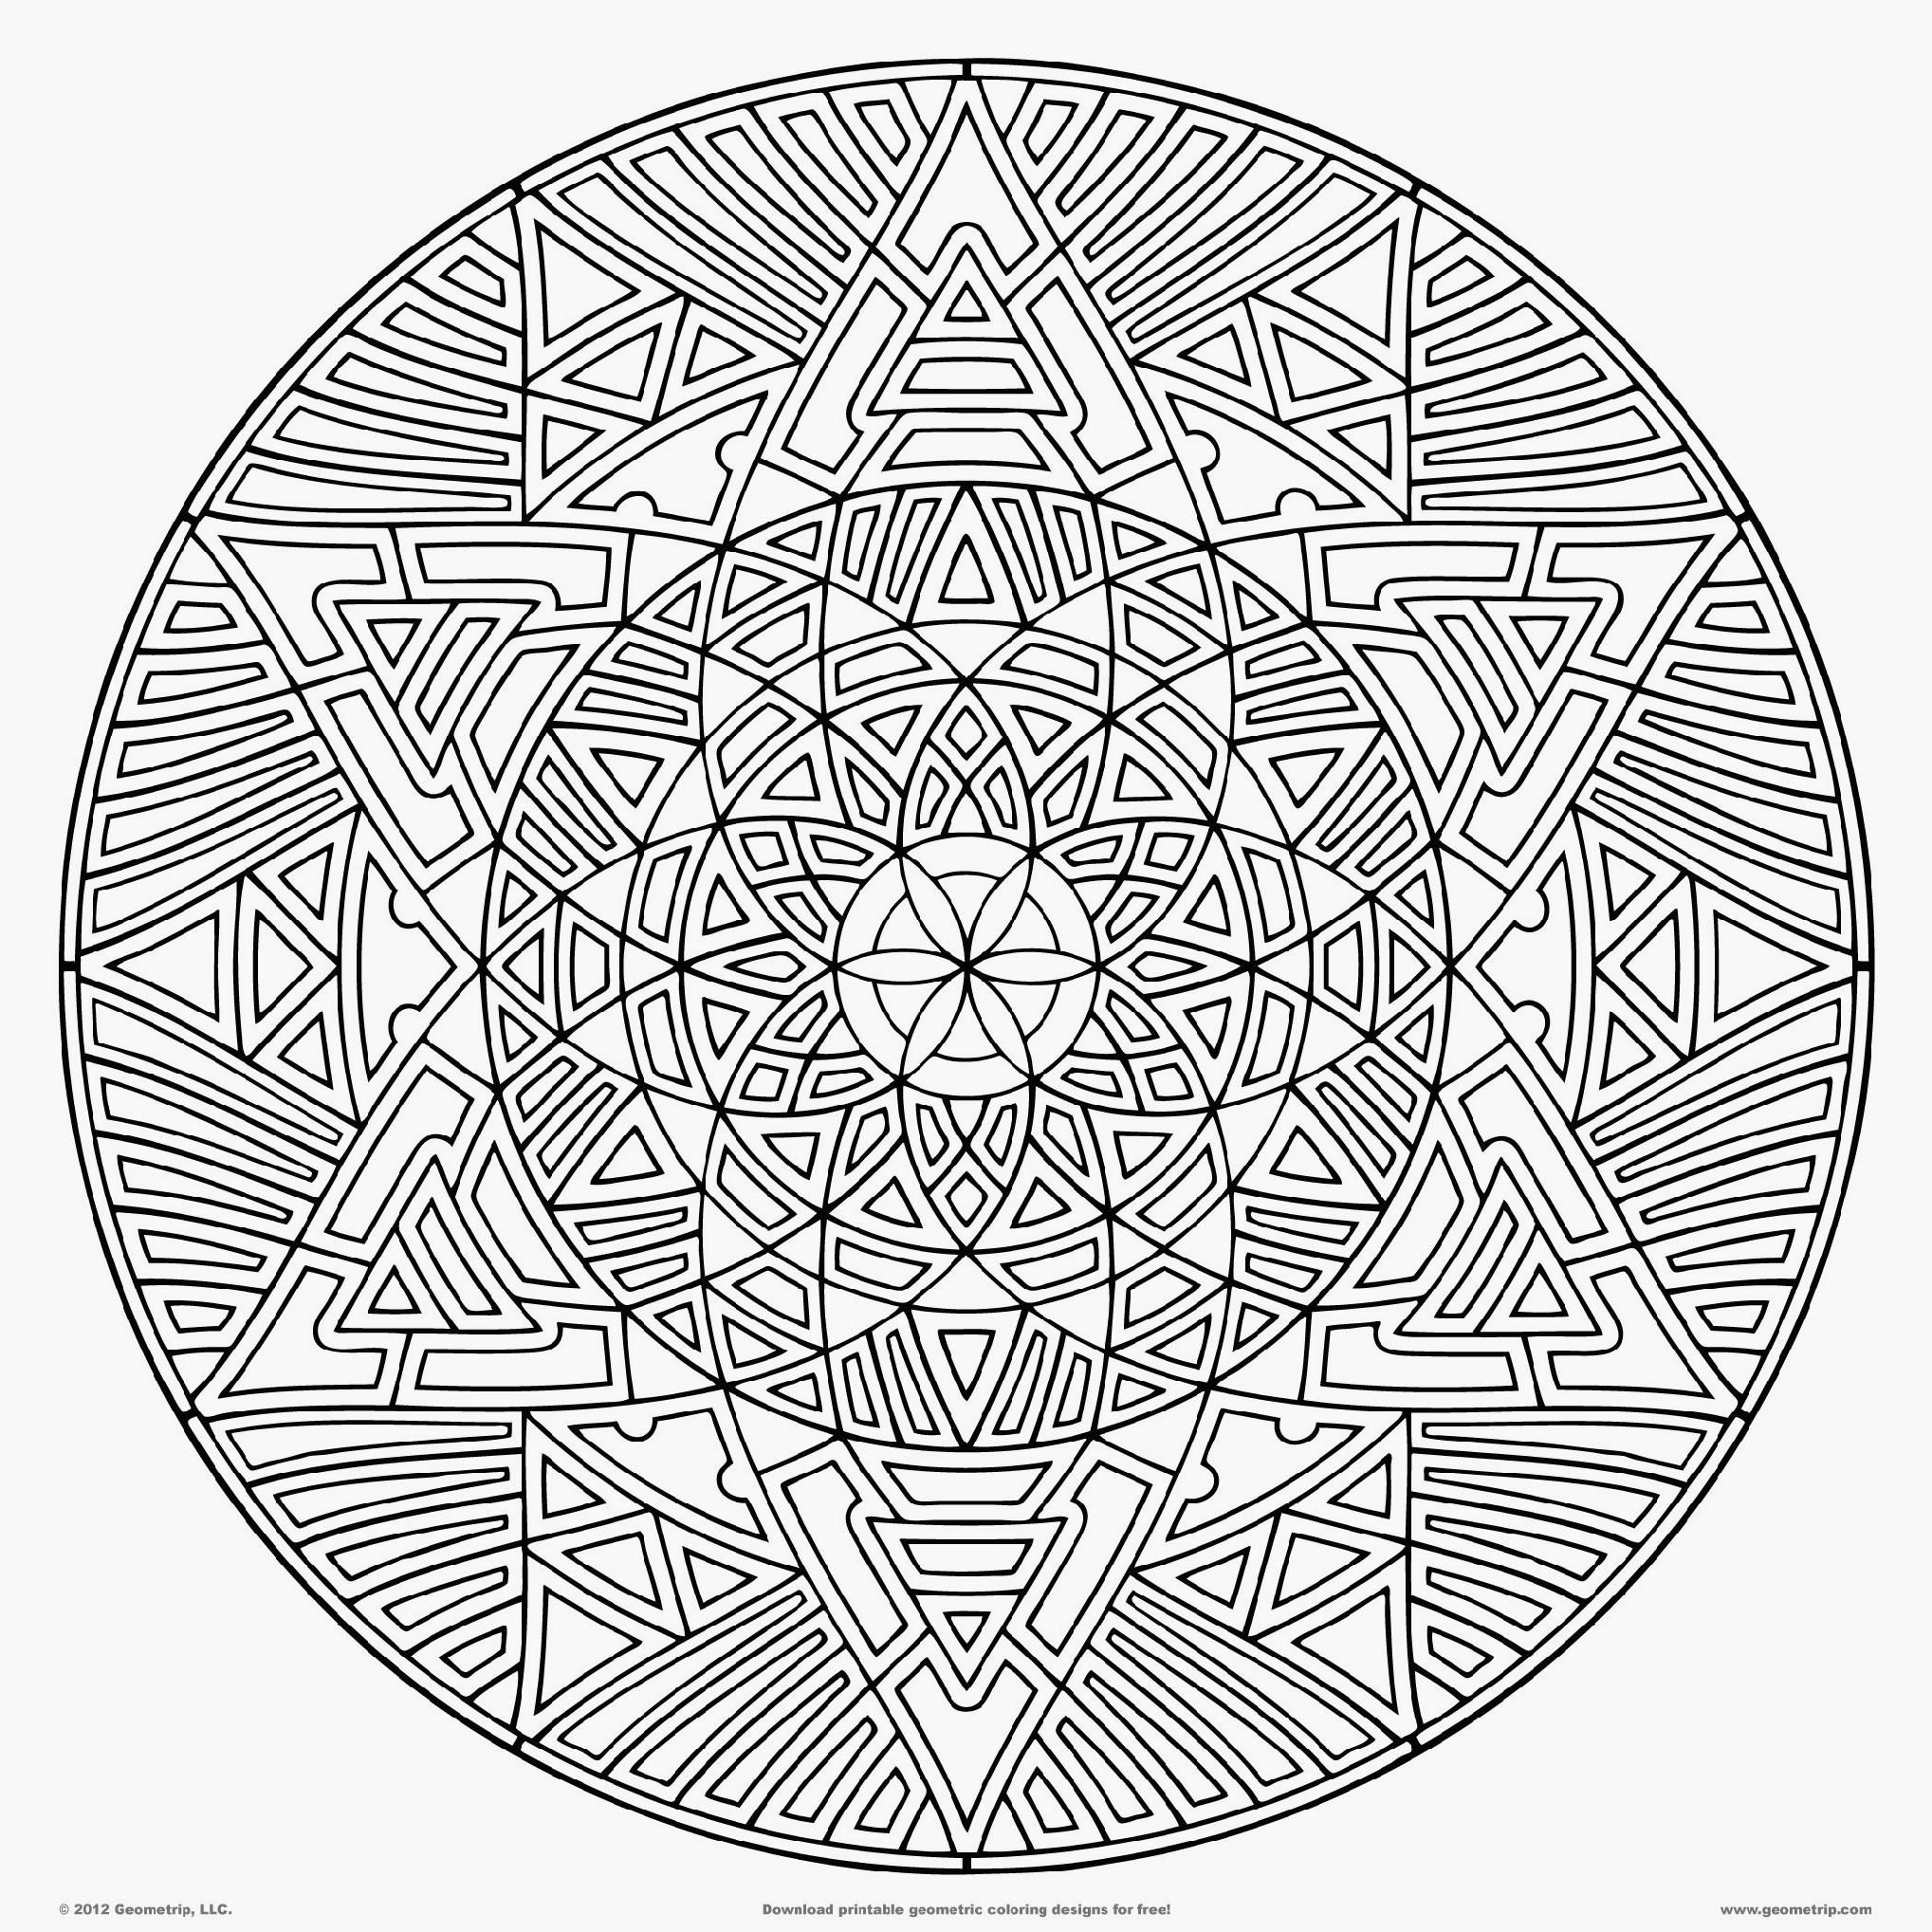 Adult Beauty Difficult Mandala Coloring Pages Gallery Images best difficult mandala coloring pages az gallery images